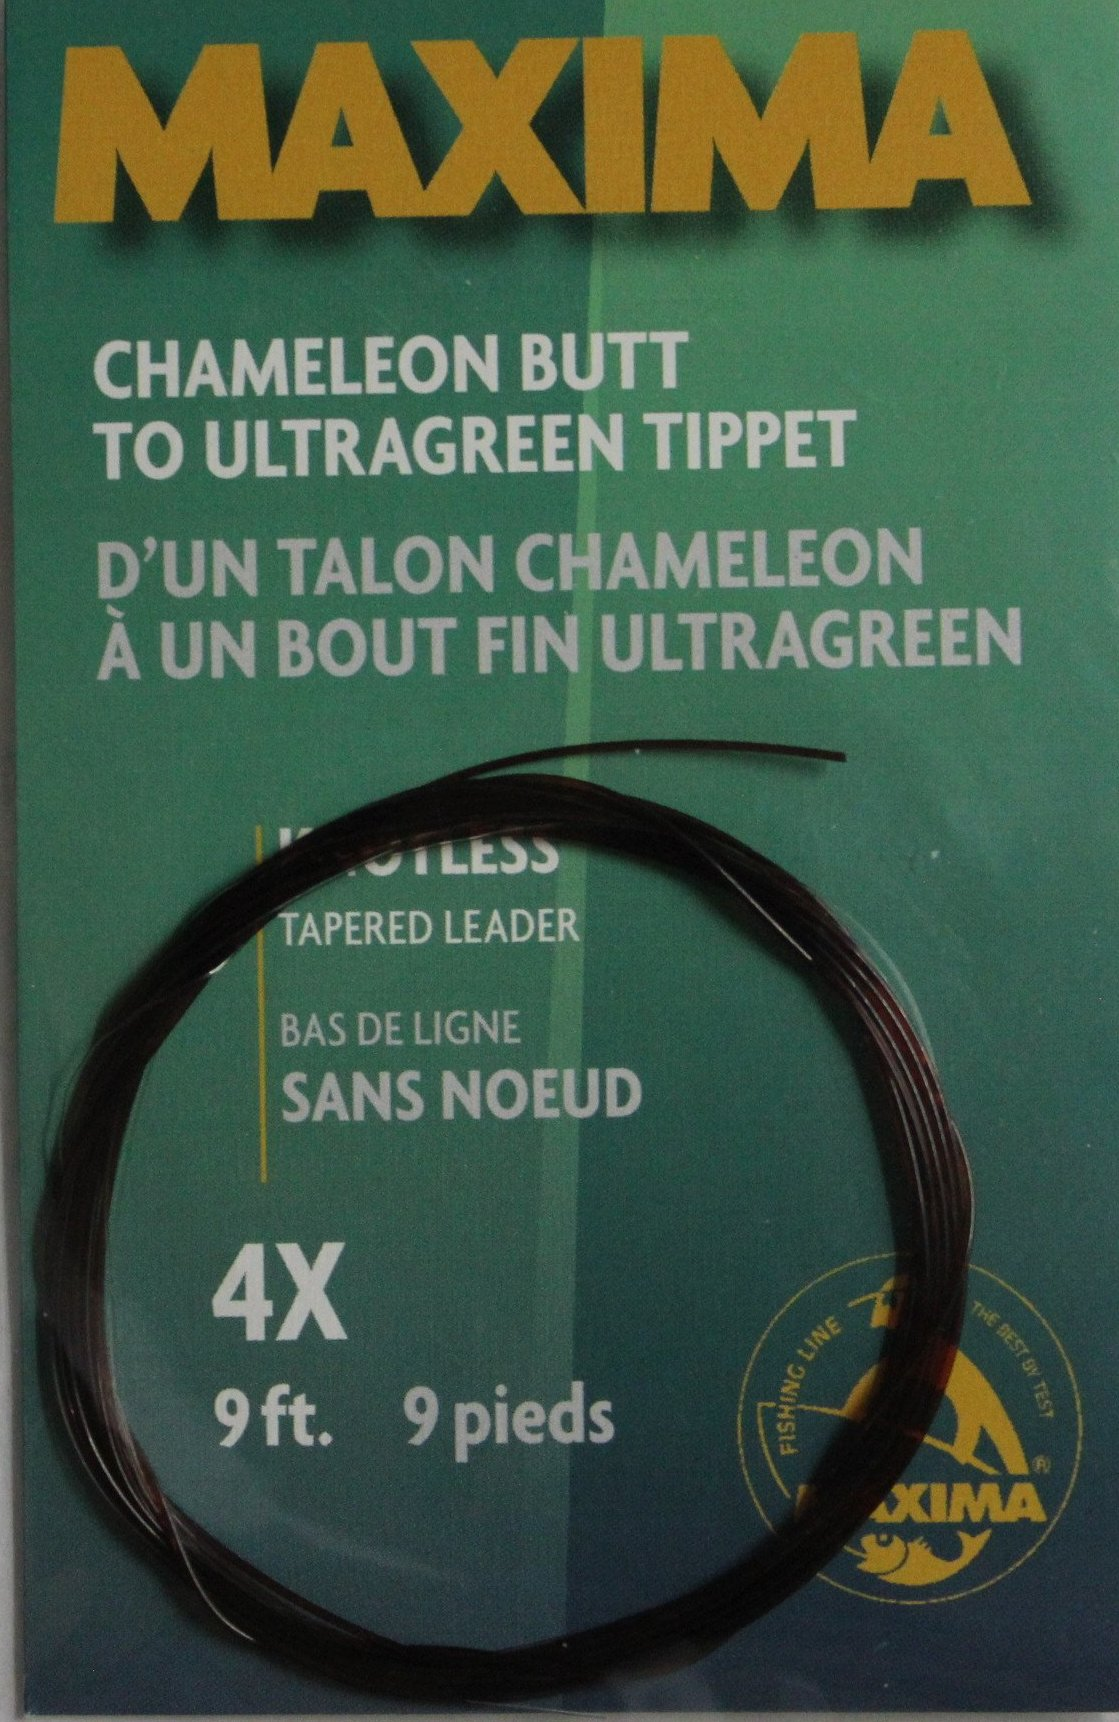 Maxima Chameleon Tapered Leader 9 feet